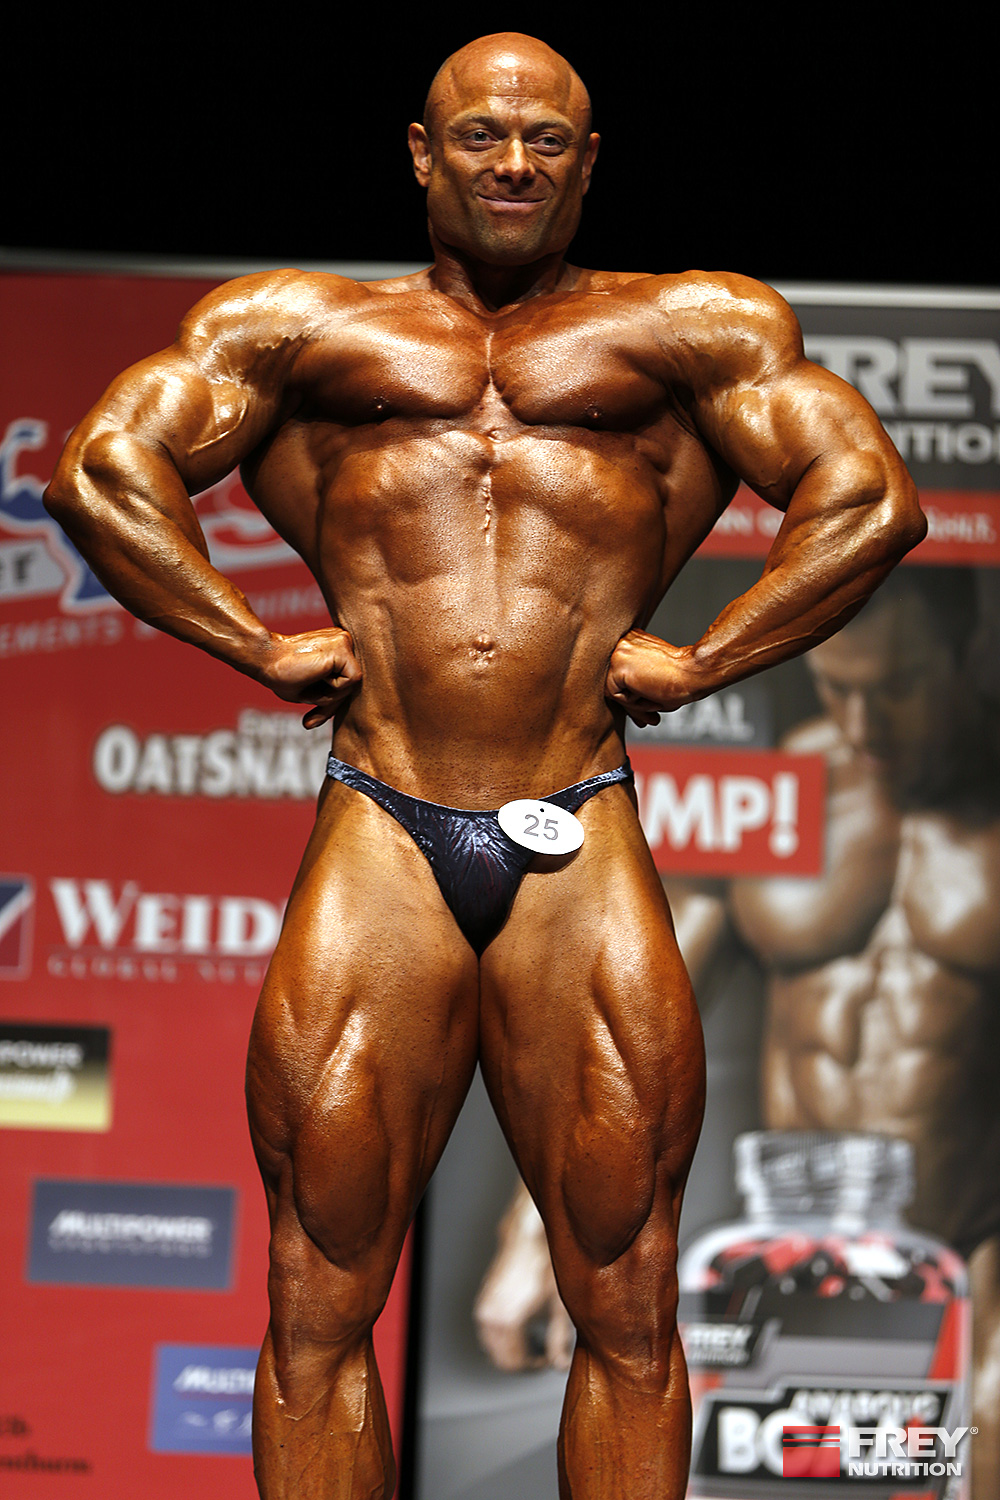 Markus Rohde - front lat spread